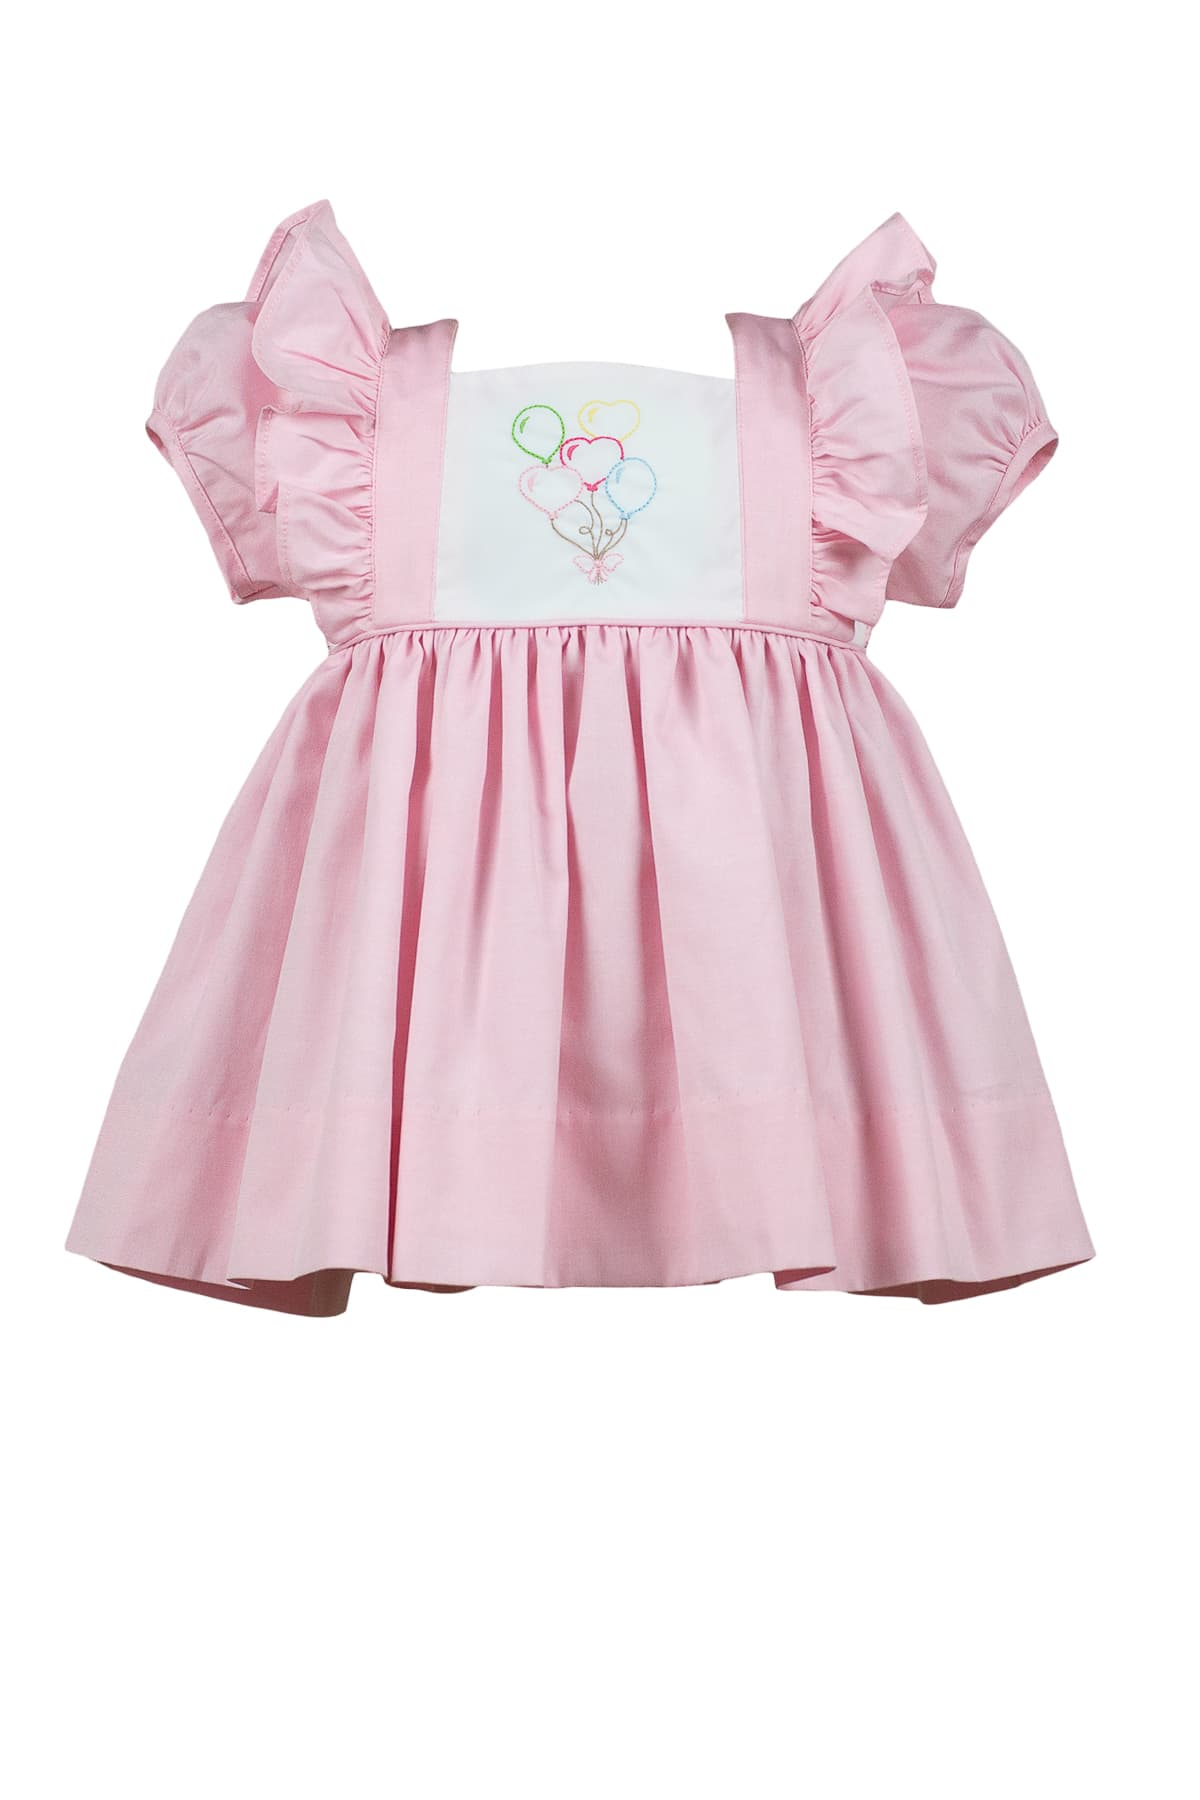 BALLOON BIRTHDAY DRESS